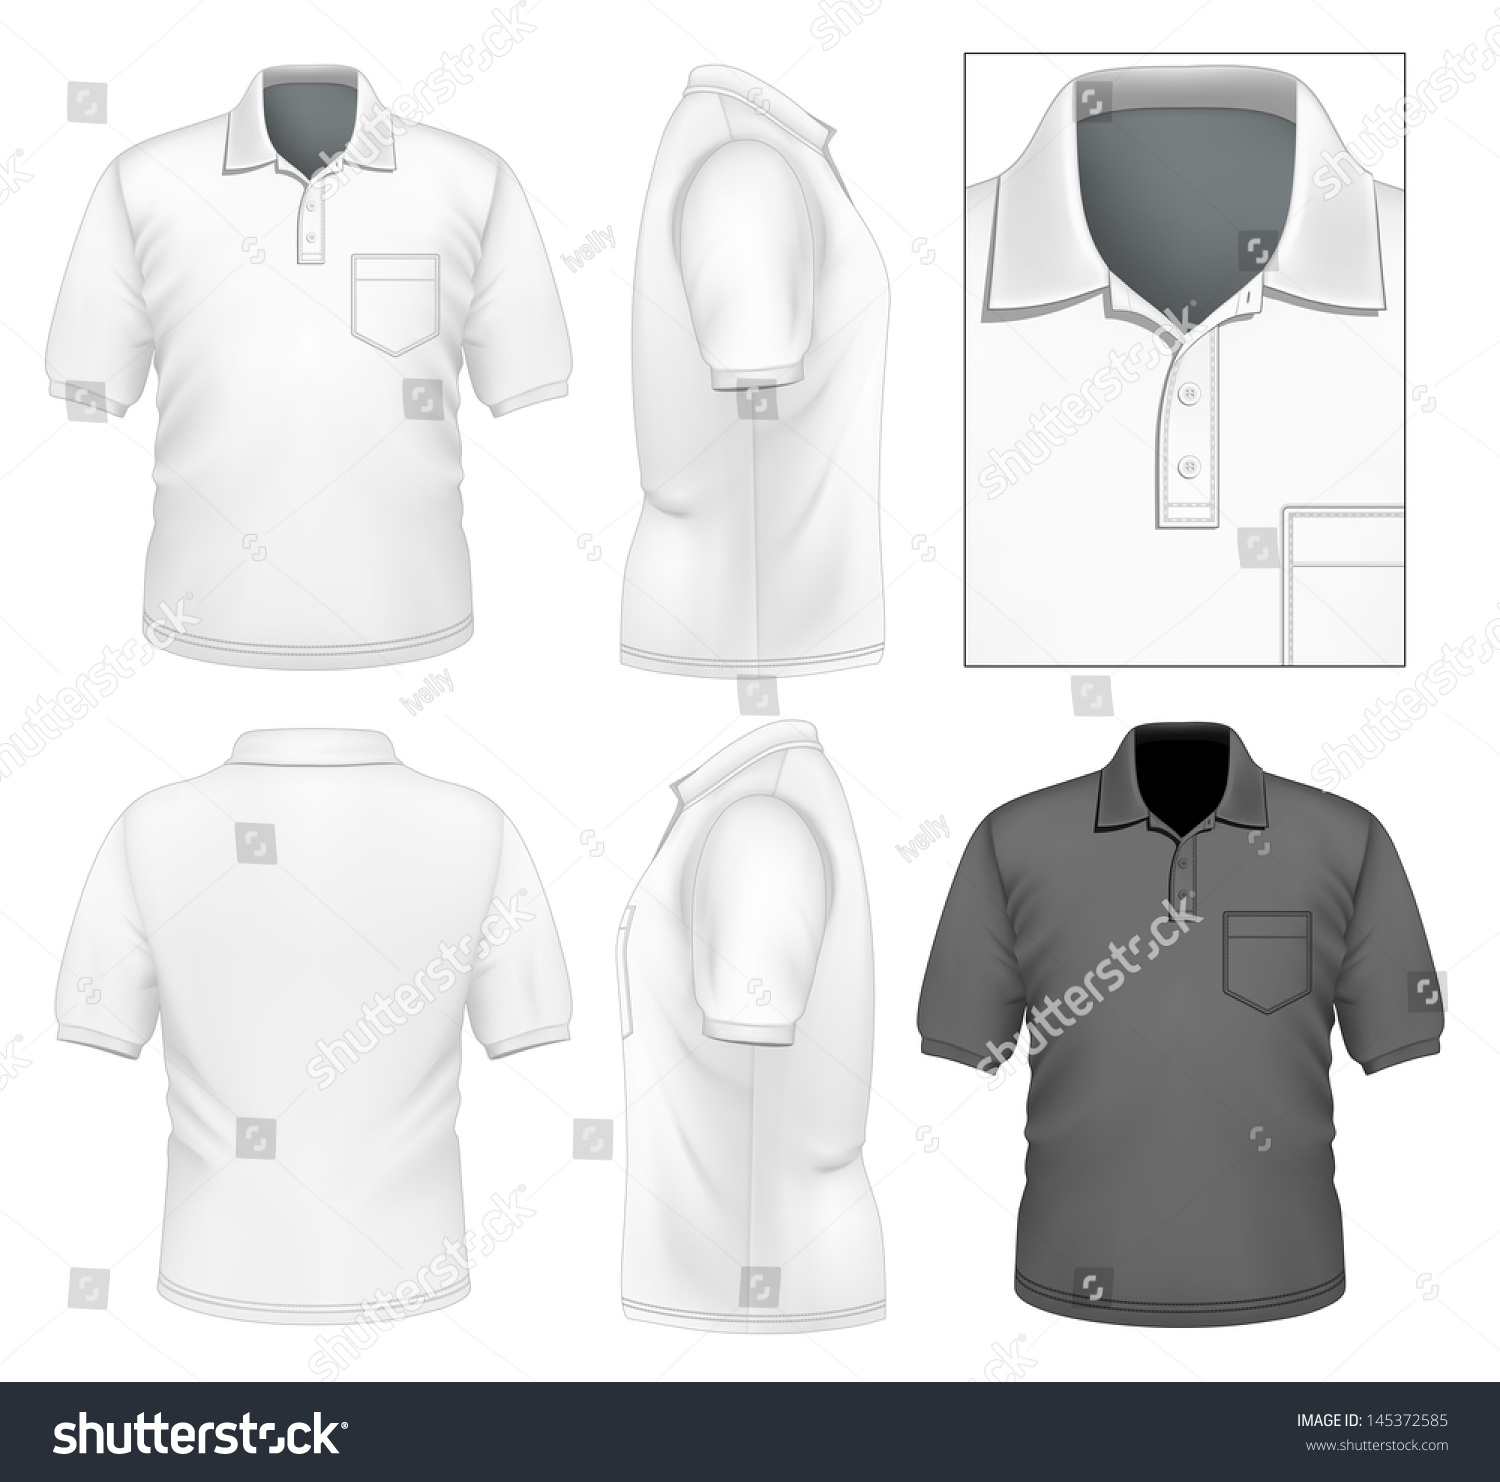 Design t shirt with front pocket - Photo Realistic Vector Illustration Men S Polo Shirt Design Template Front View